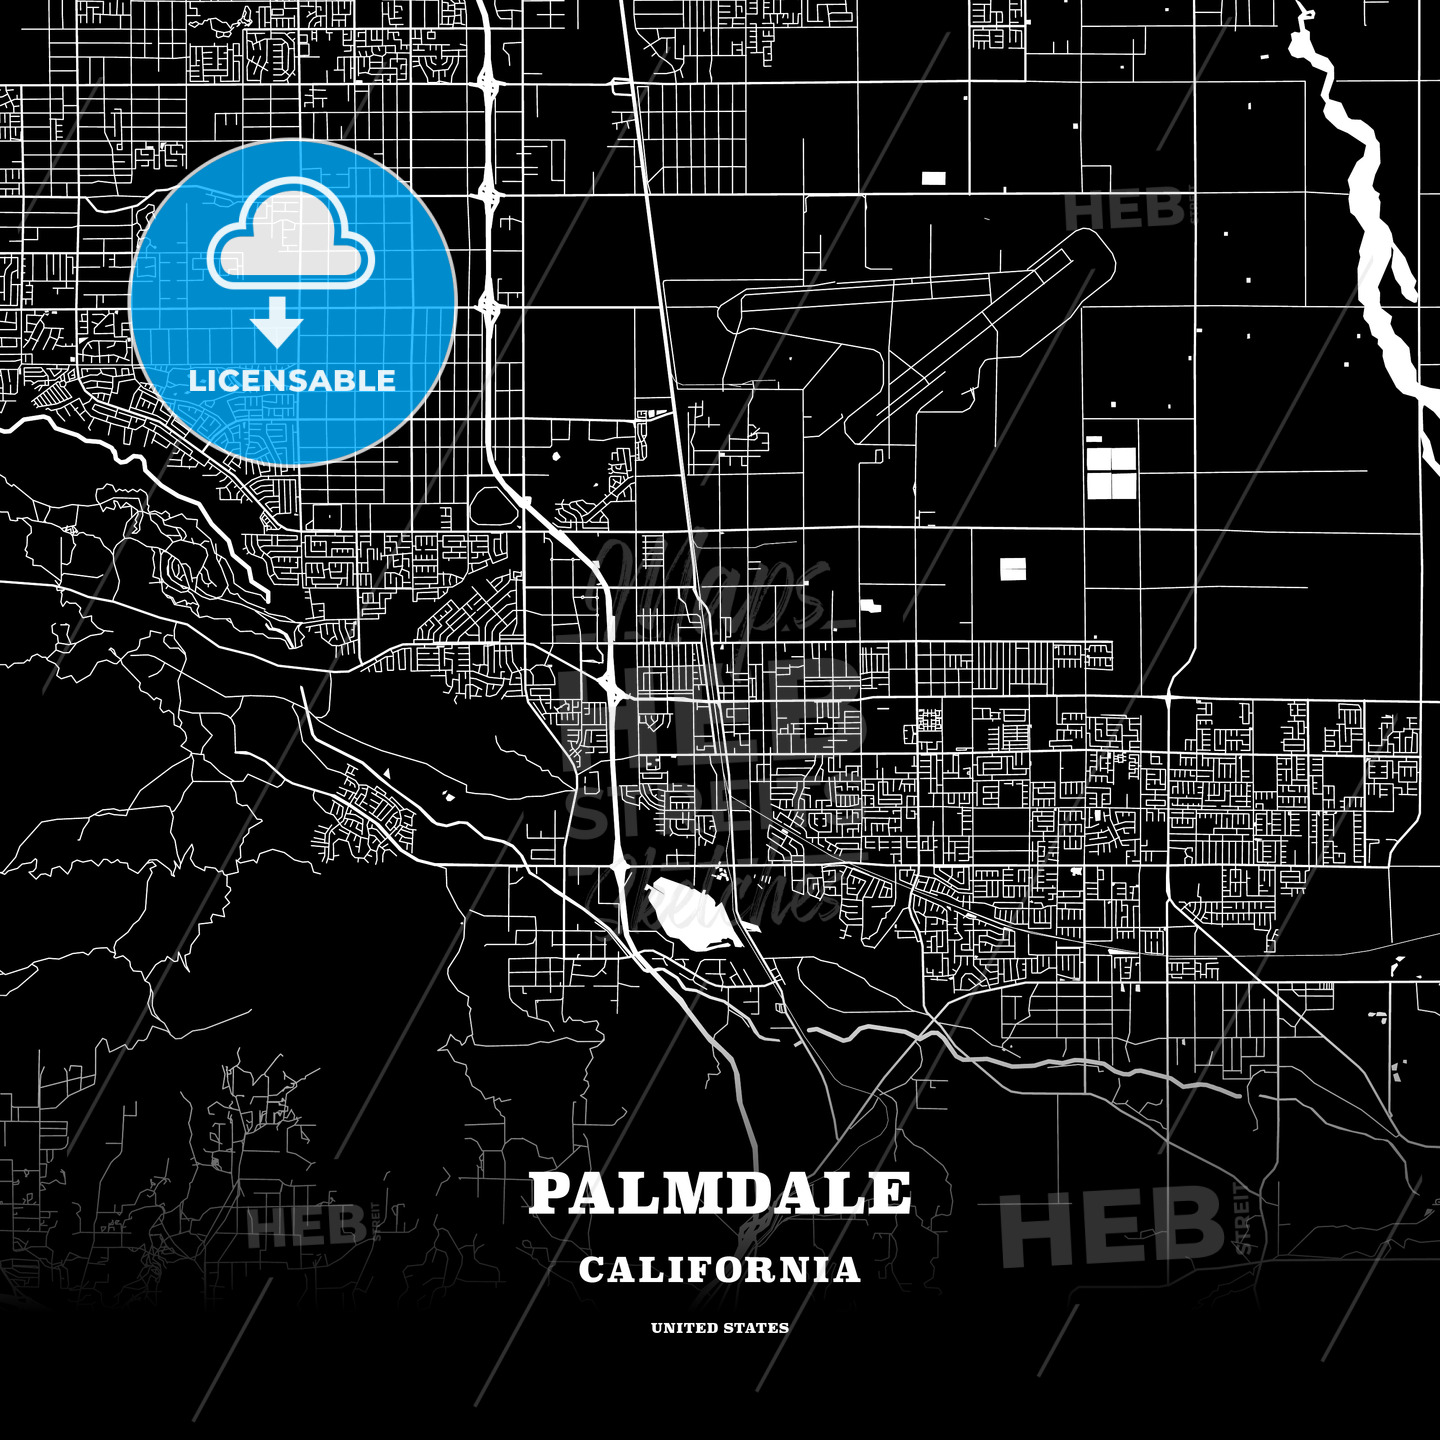 Black map poster template of Palmdale, California, USA